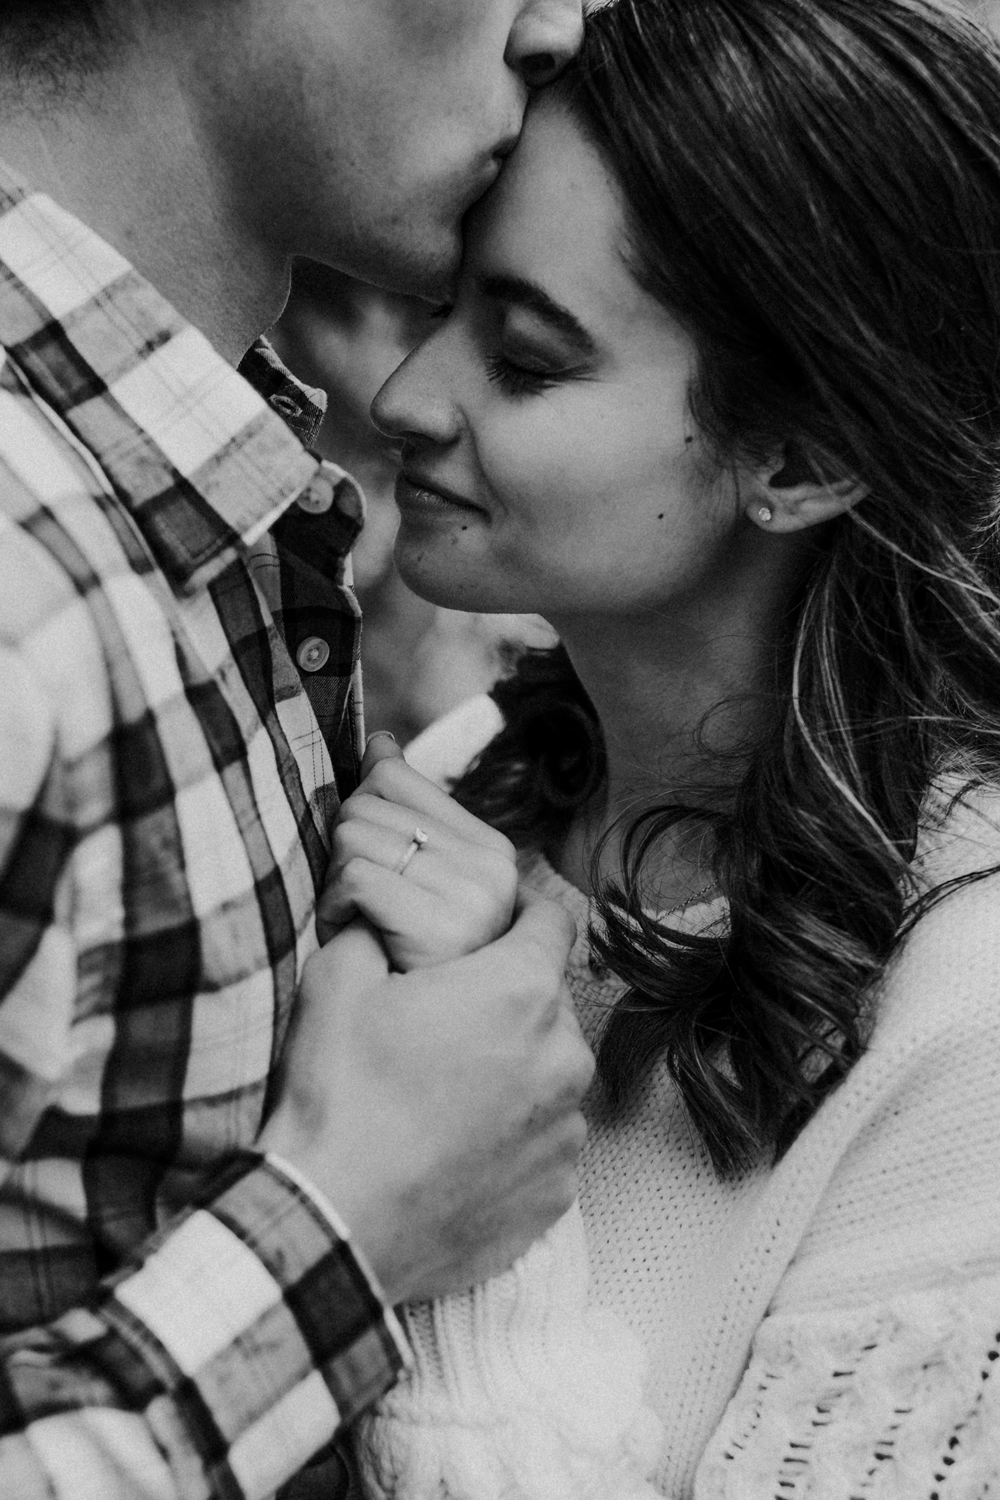 Engagement photography close-up